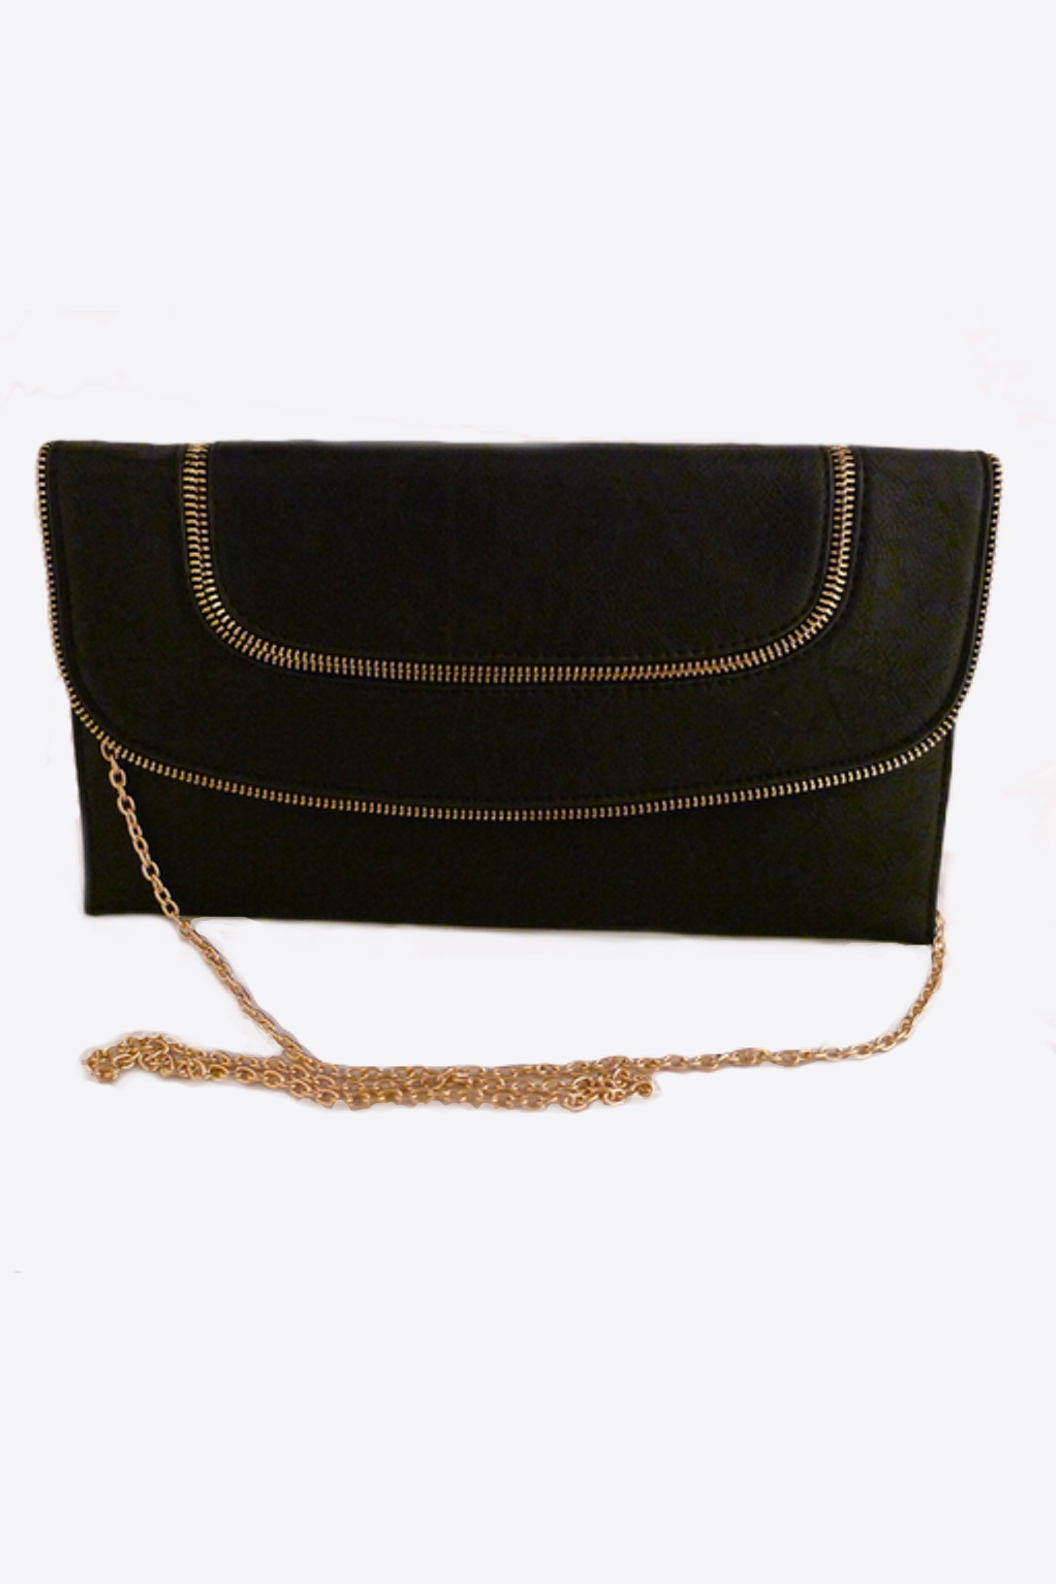 Black leather clutch, black leather bag, Black zipper clutch